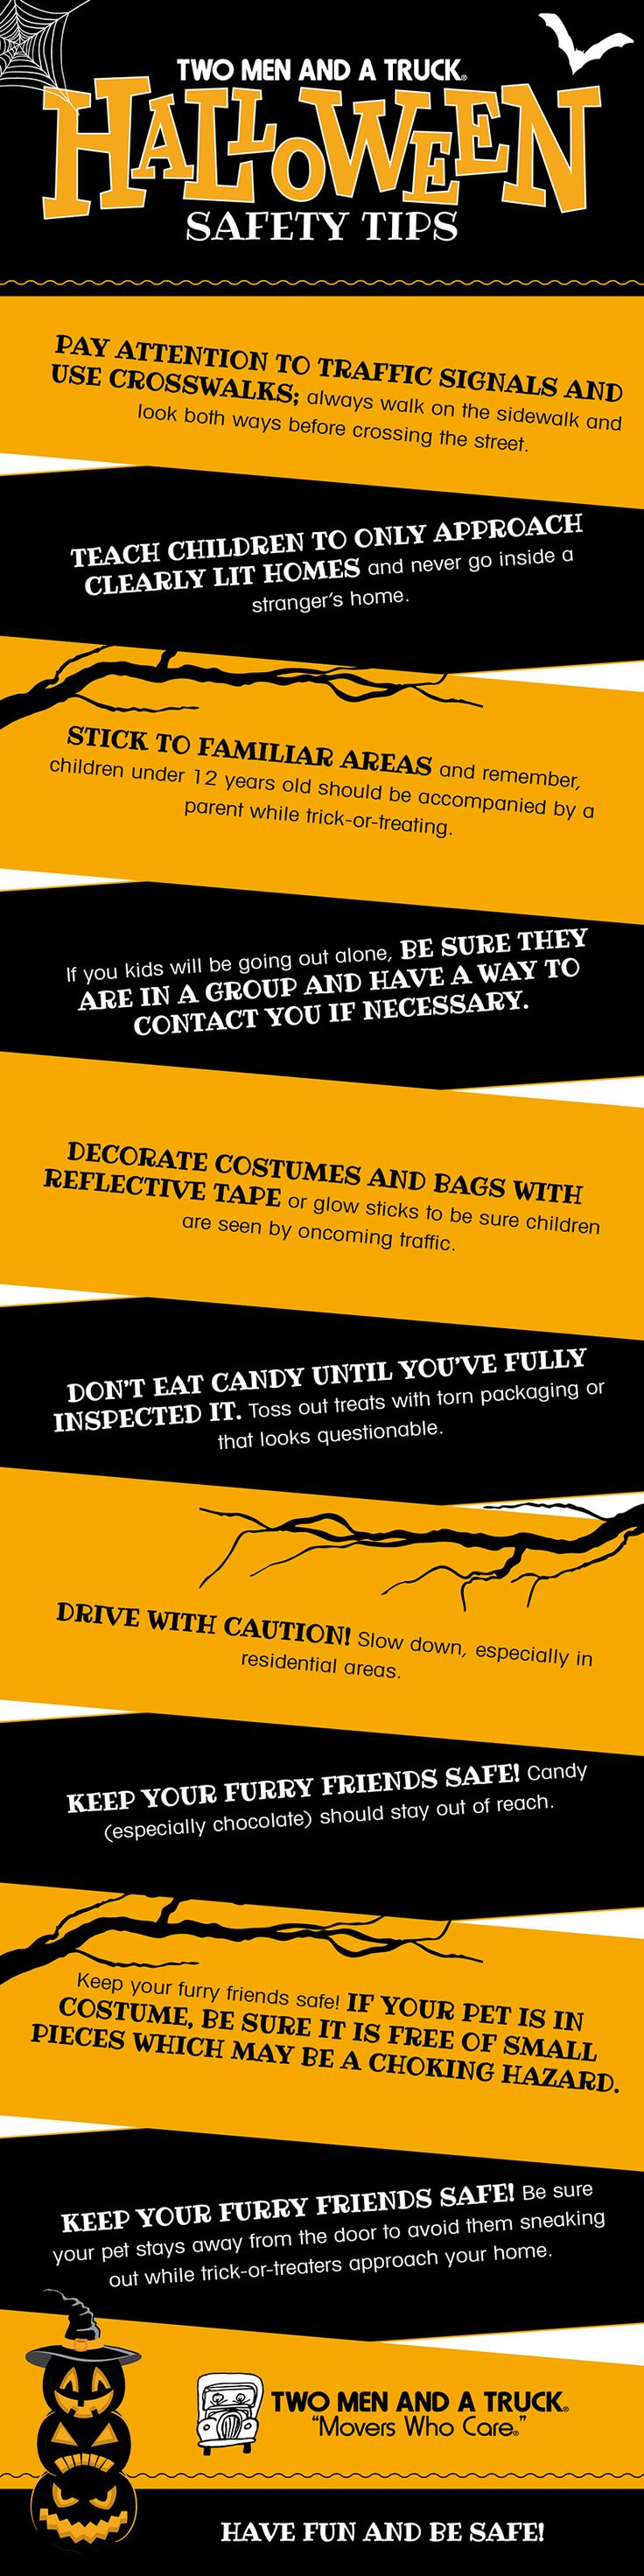 Must read Halloween safety tips for any parent. Stay safe this season!